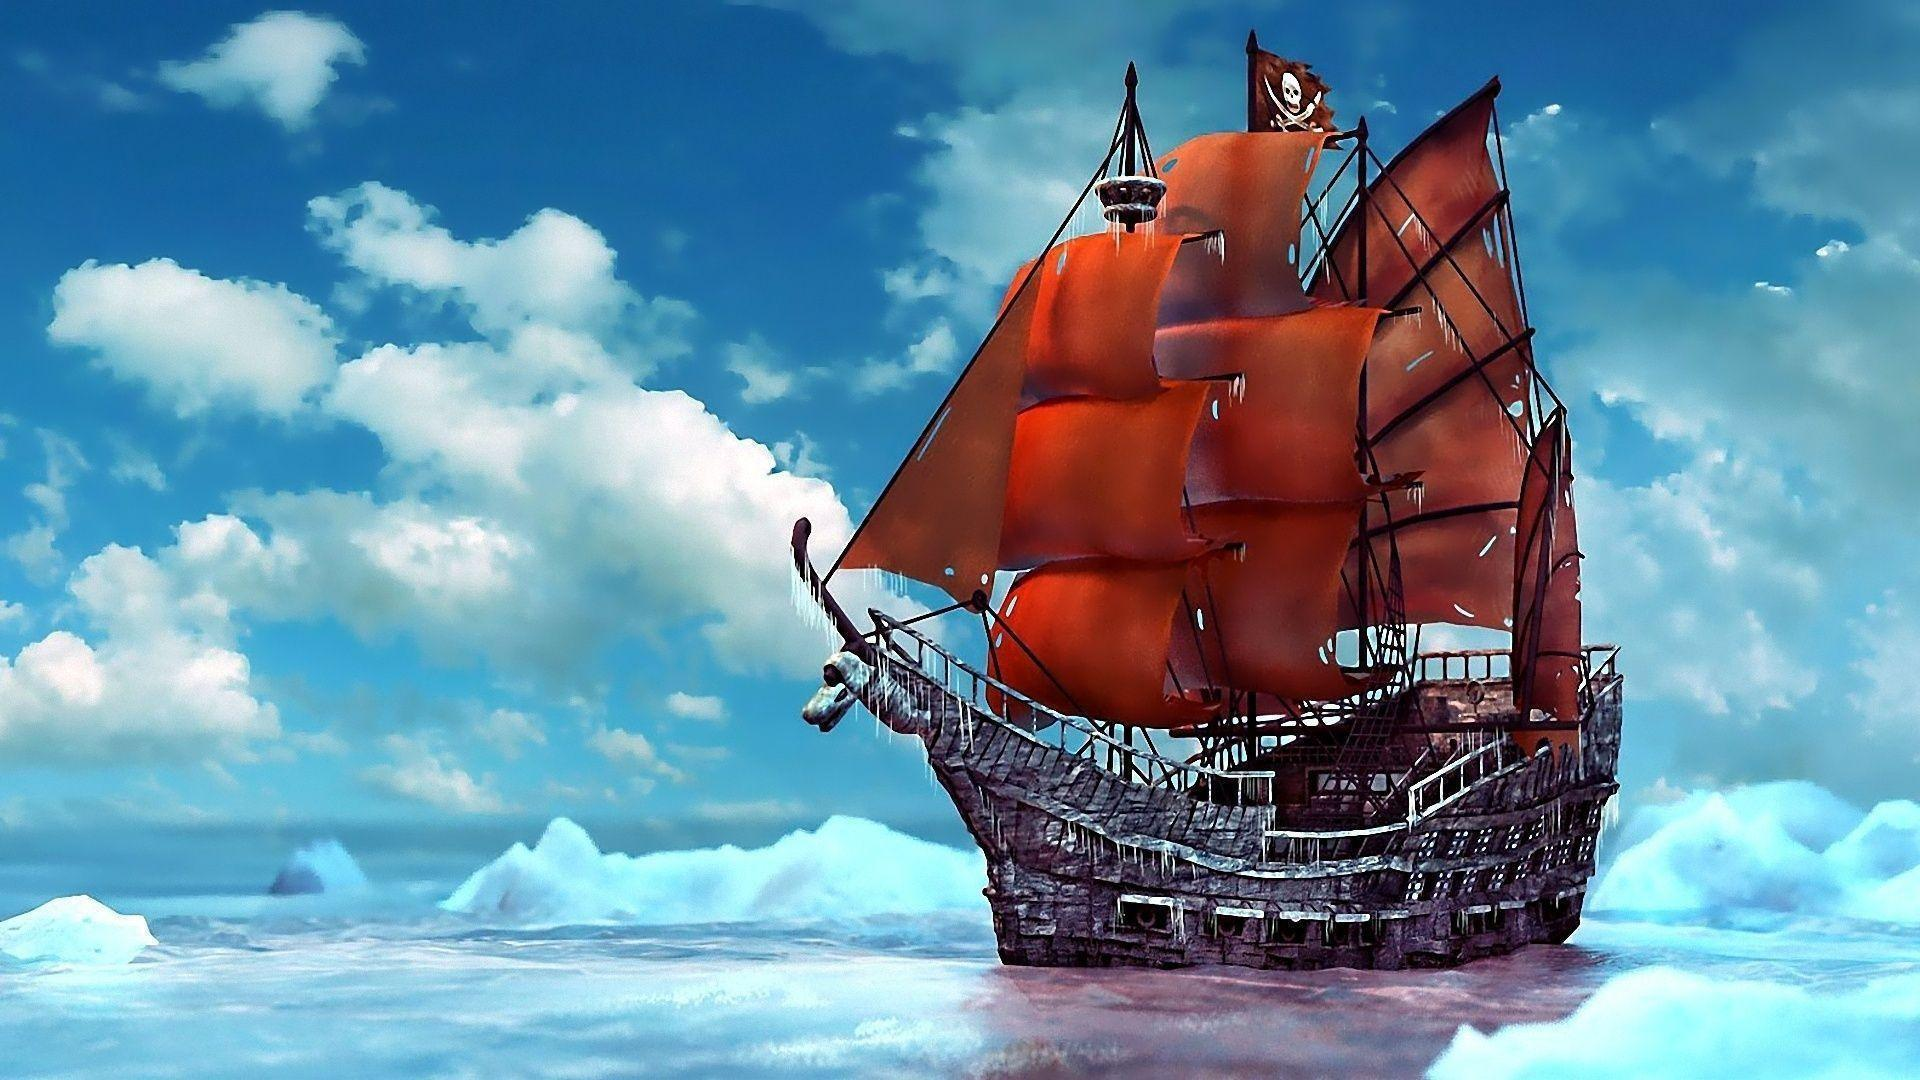 Pirate Ship Backgrounds - Wallpaper Cave